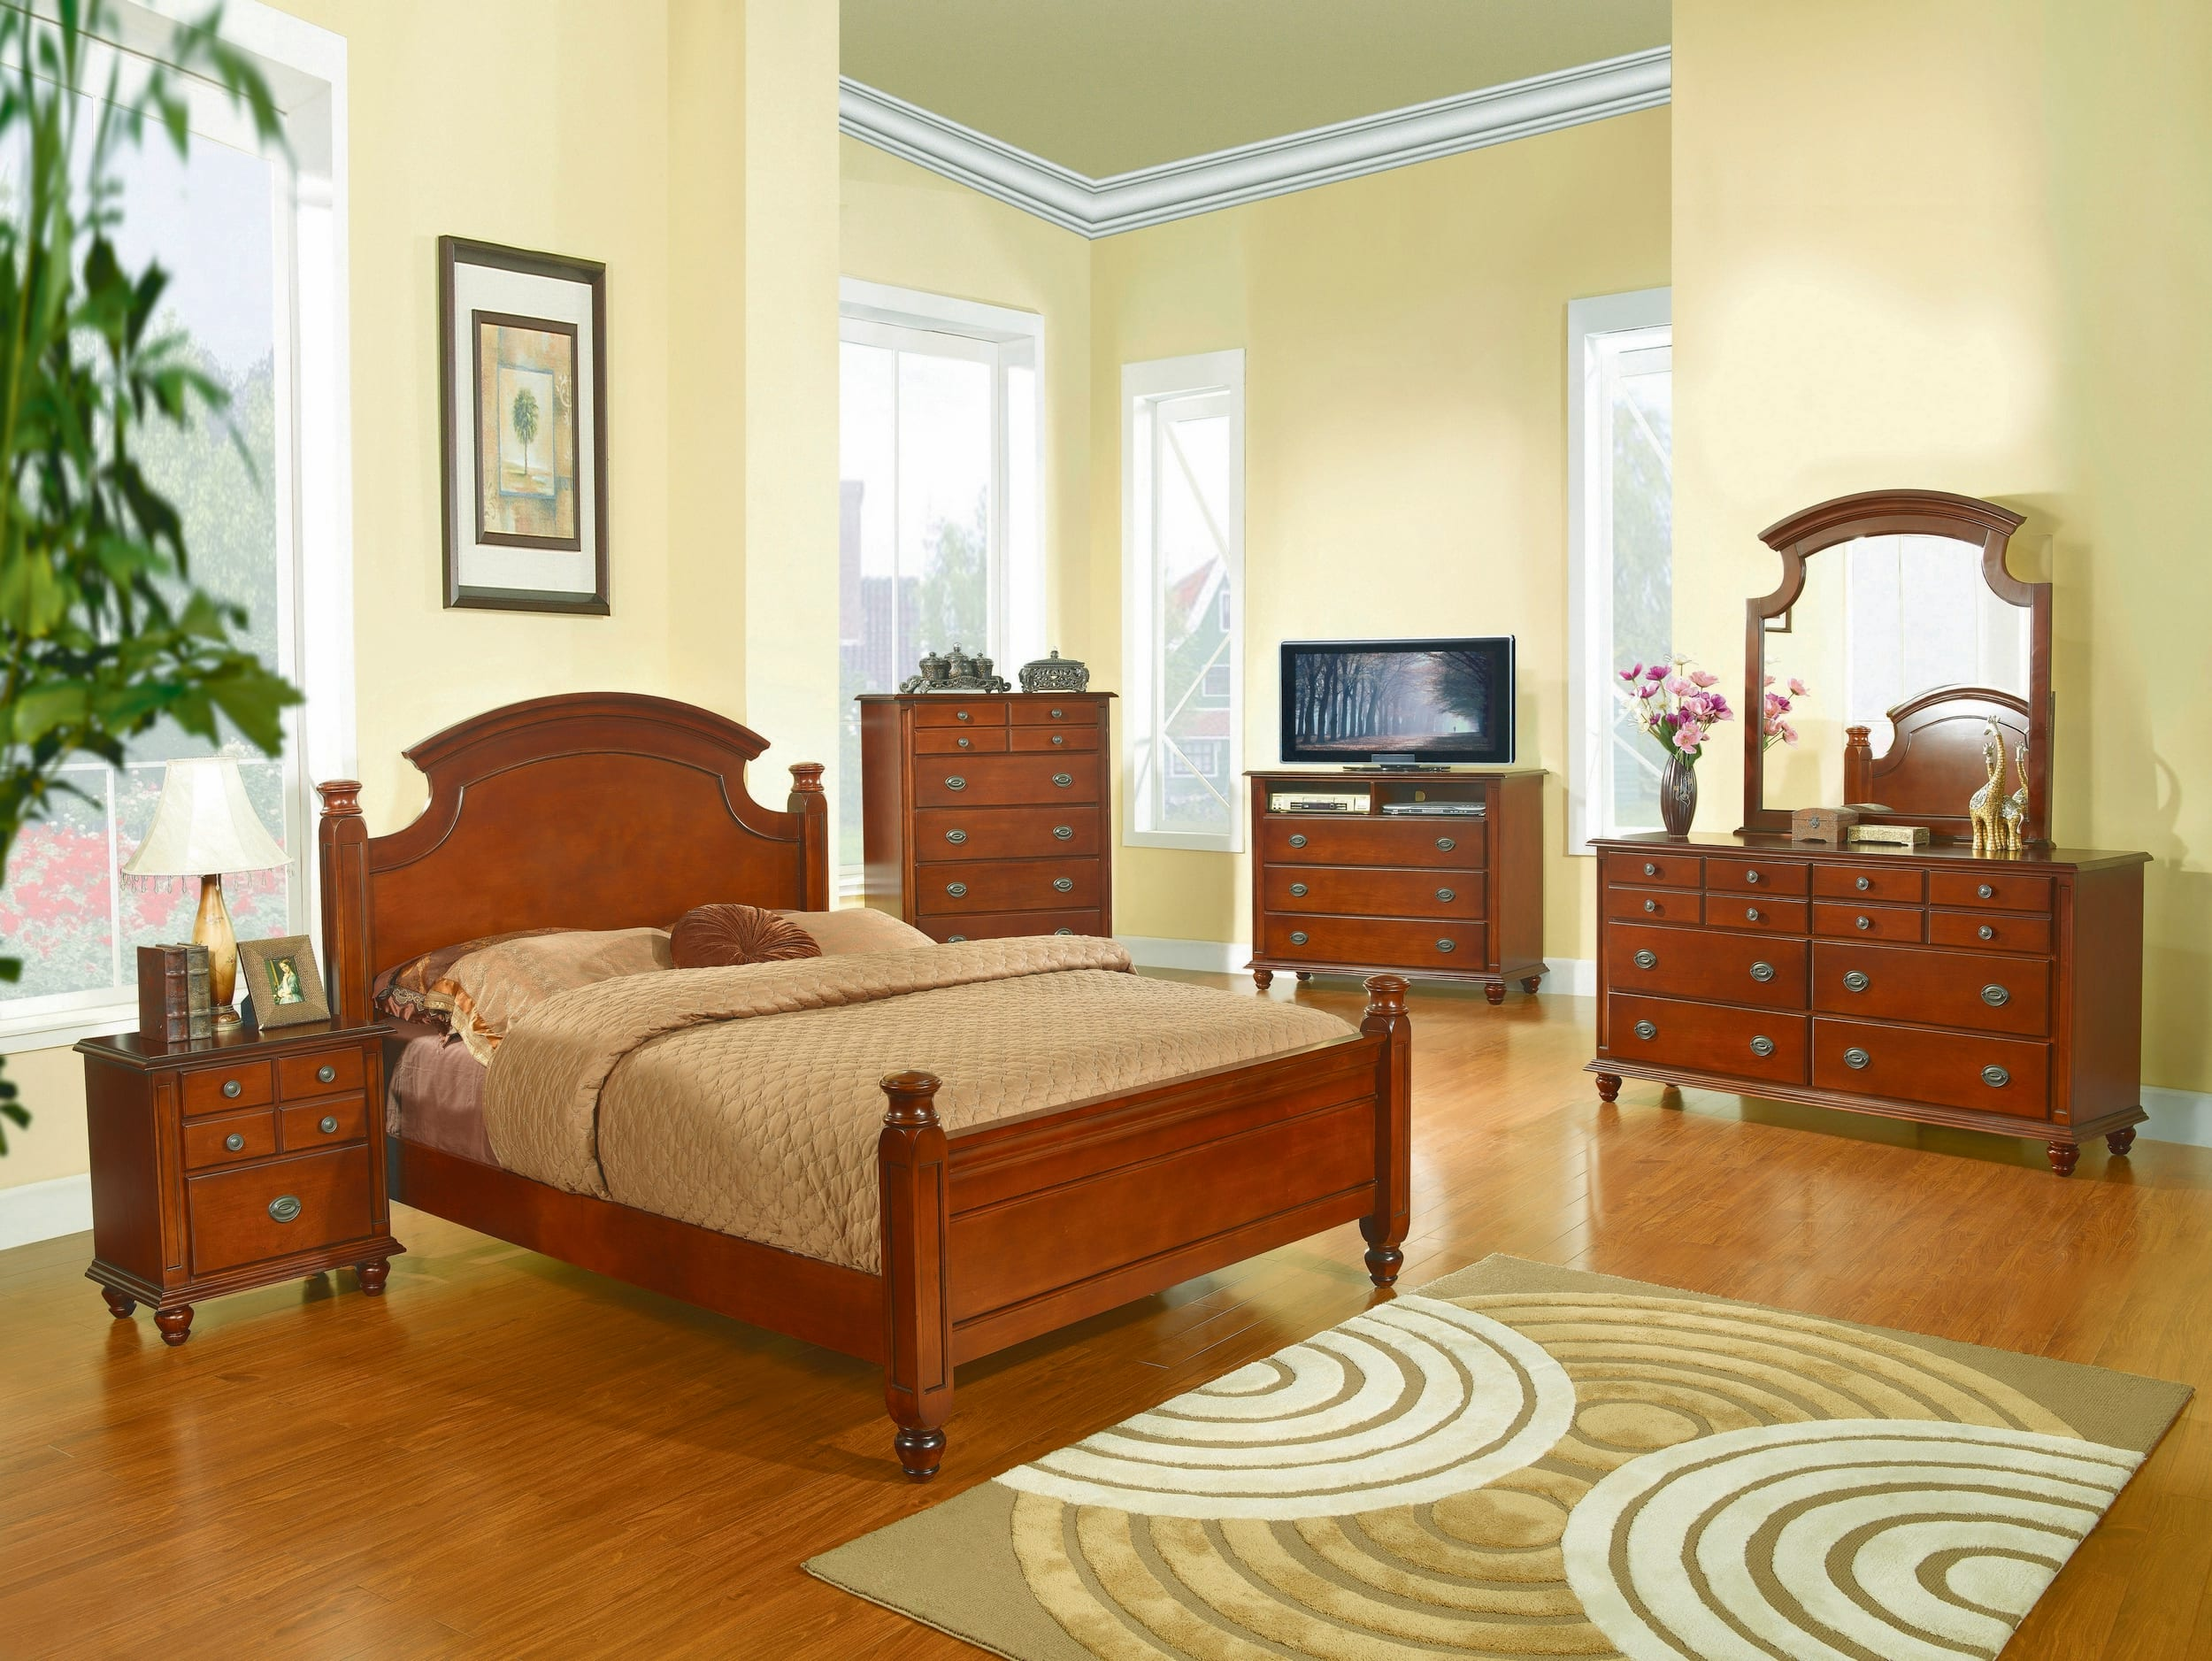 Glory Cherry King 6-Piece Bedroom Set & Reviews - Goedekers.com